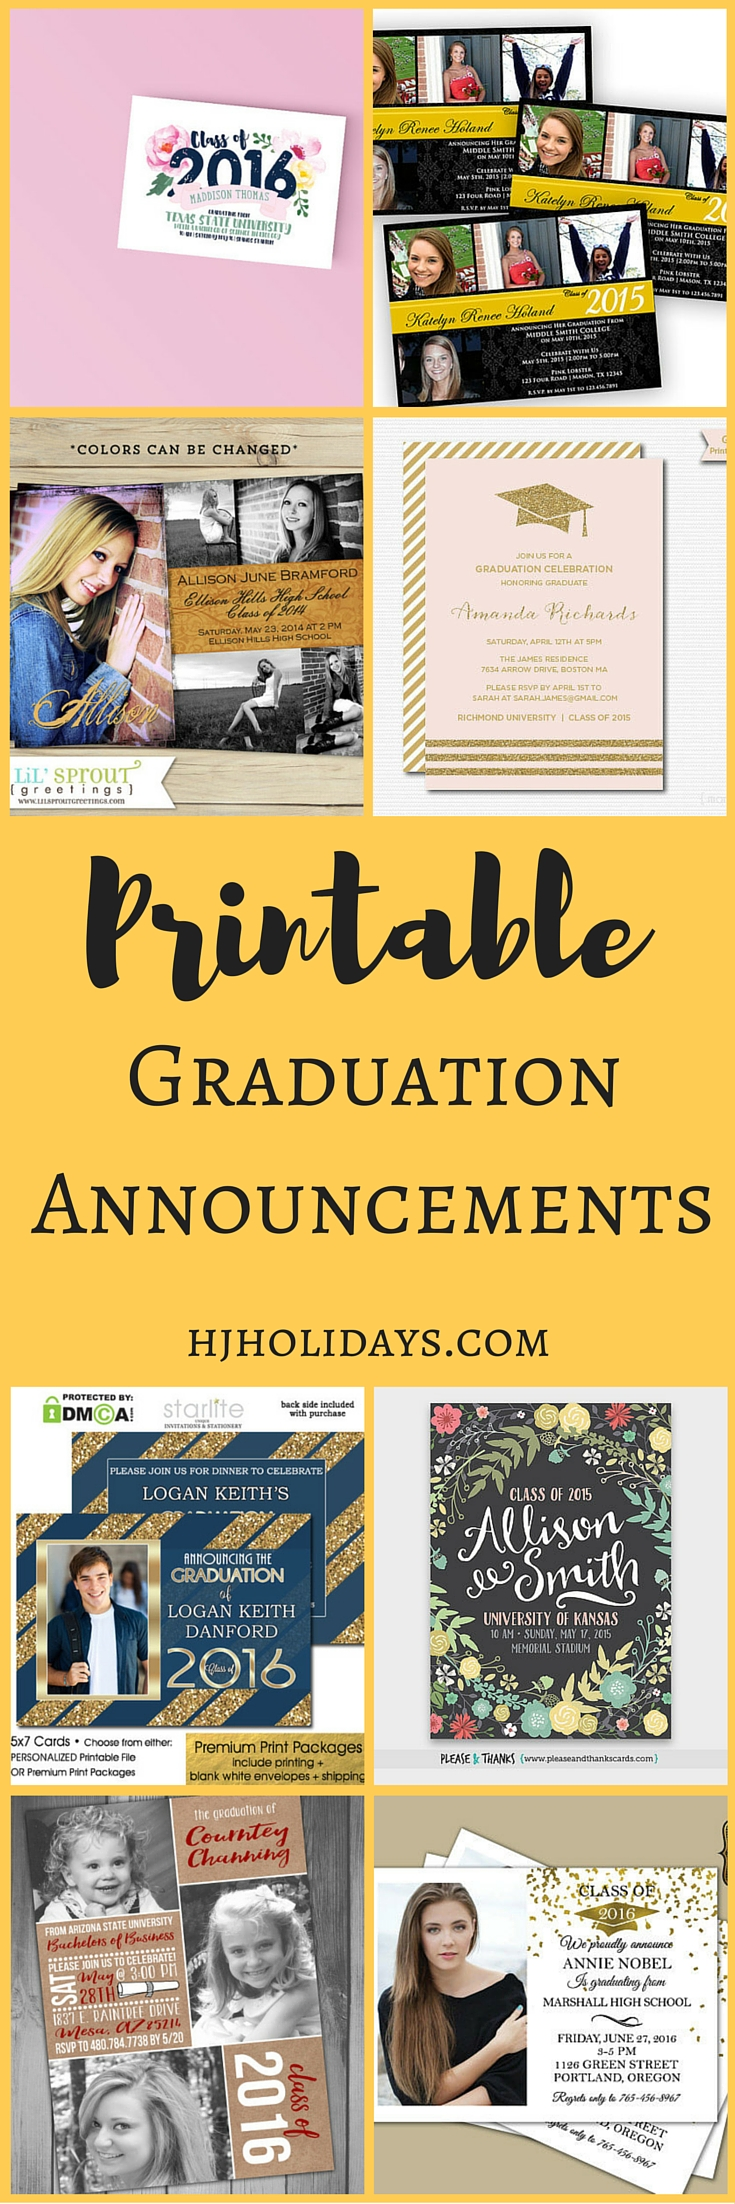 Printable Graduation Announcements